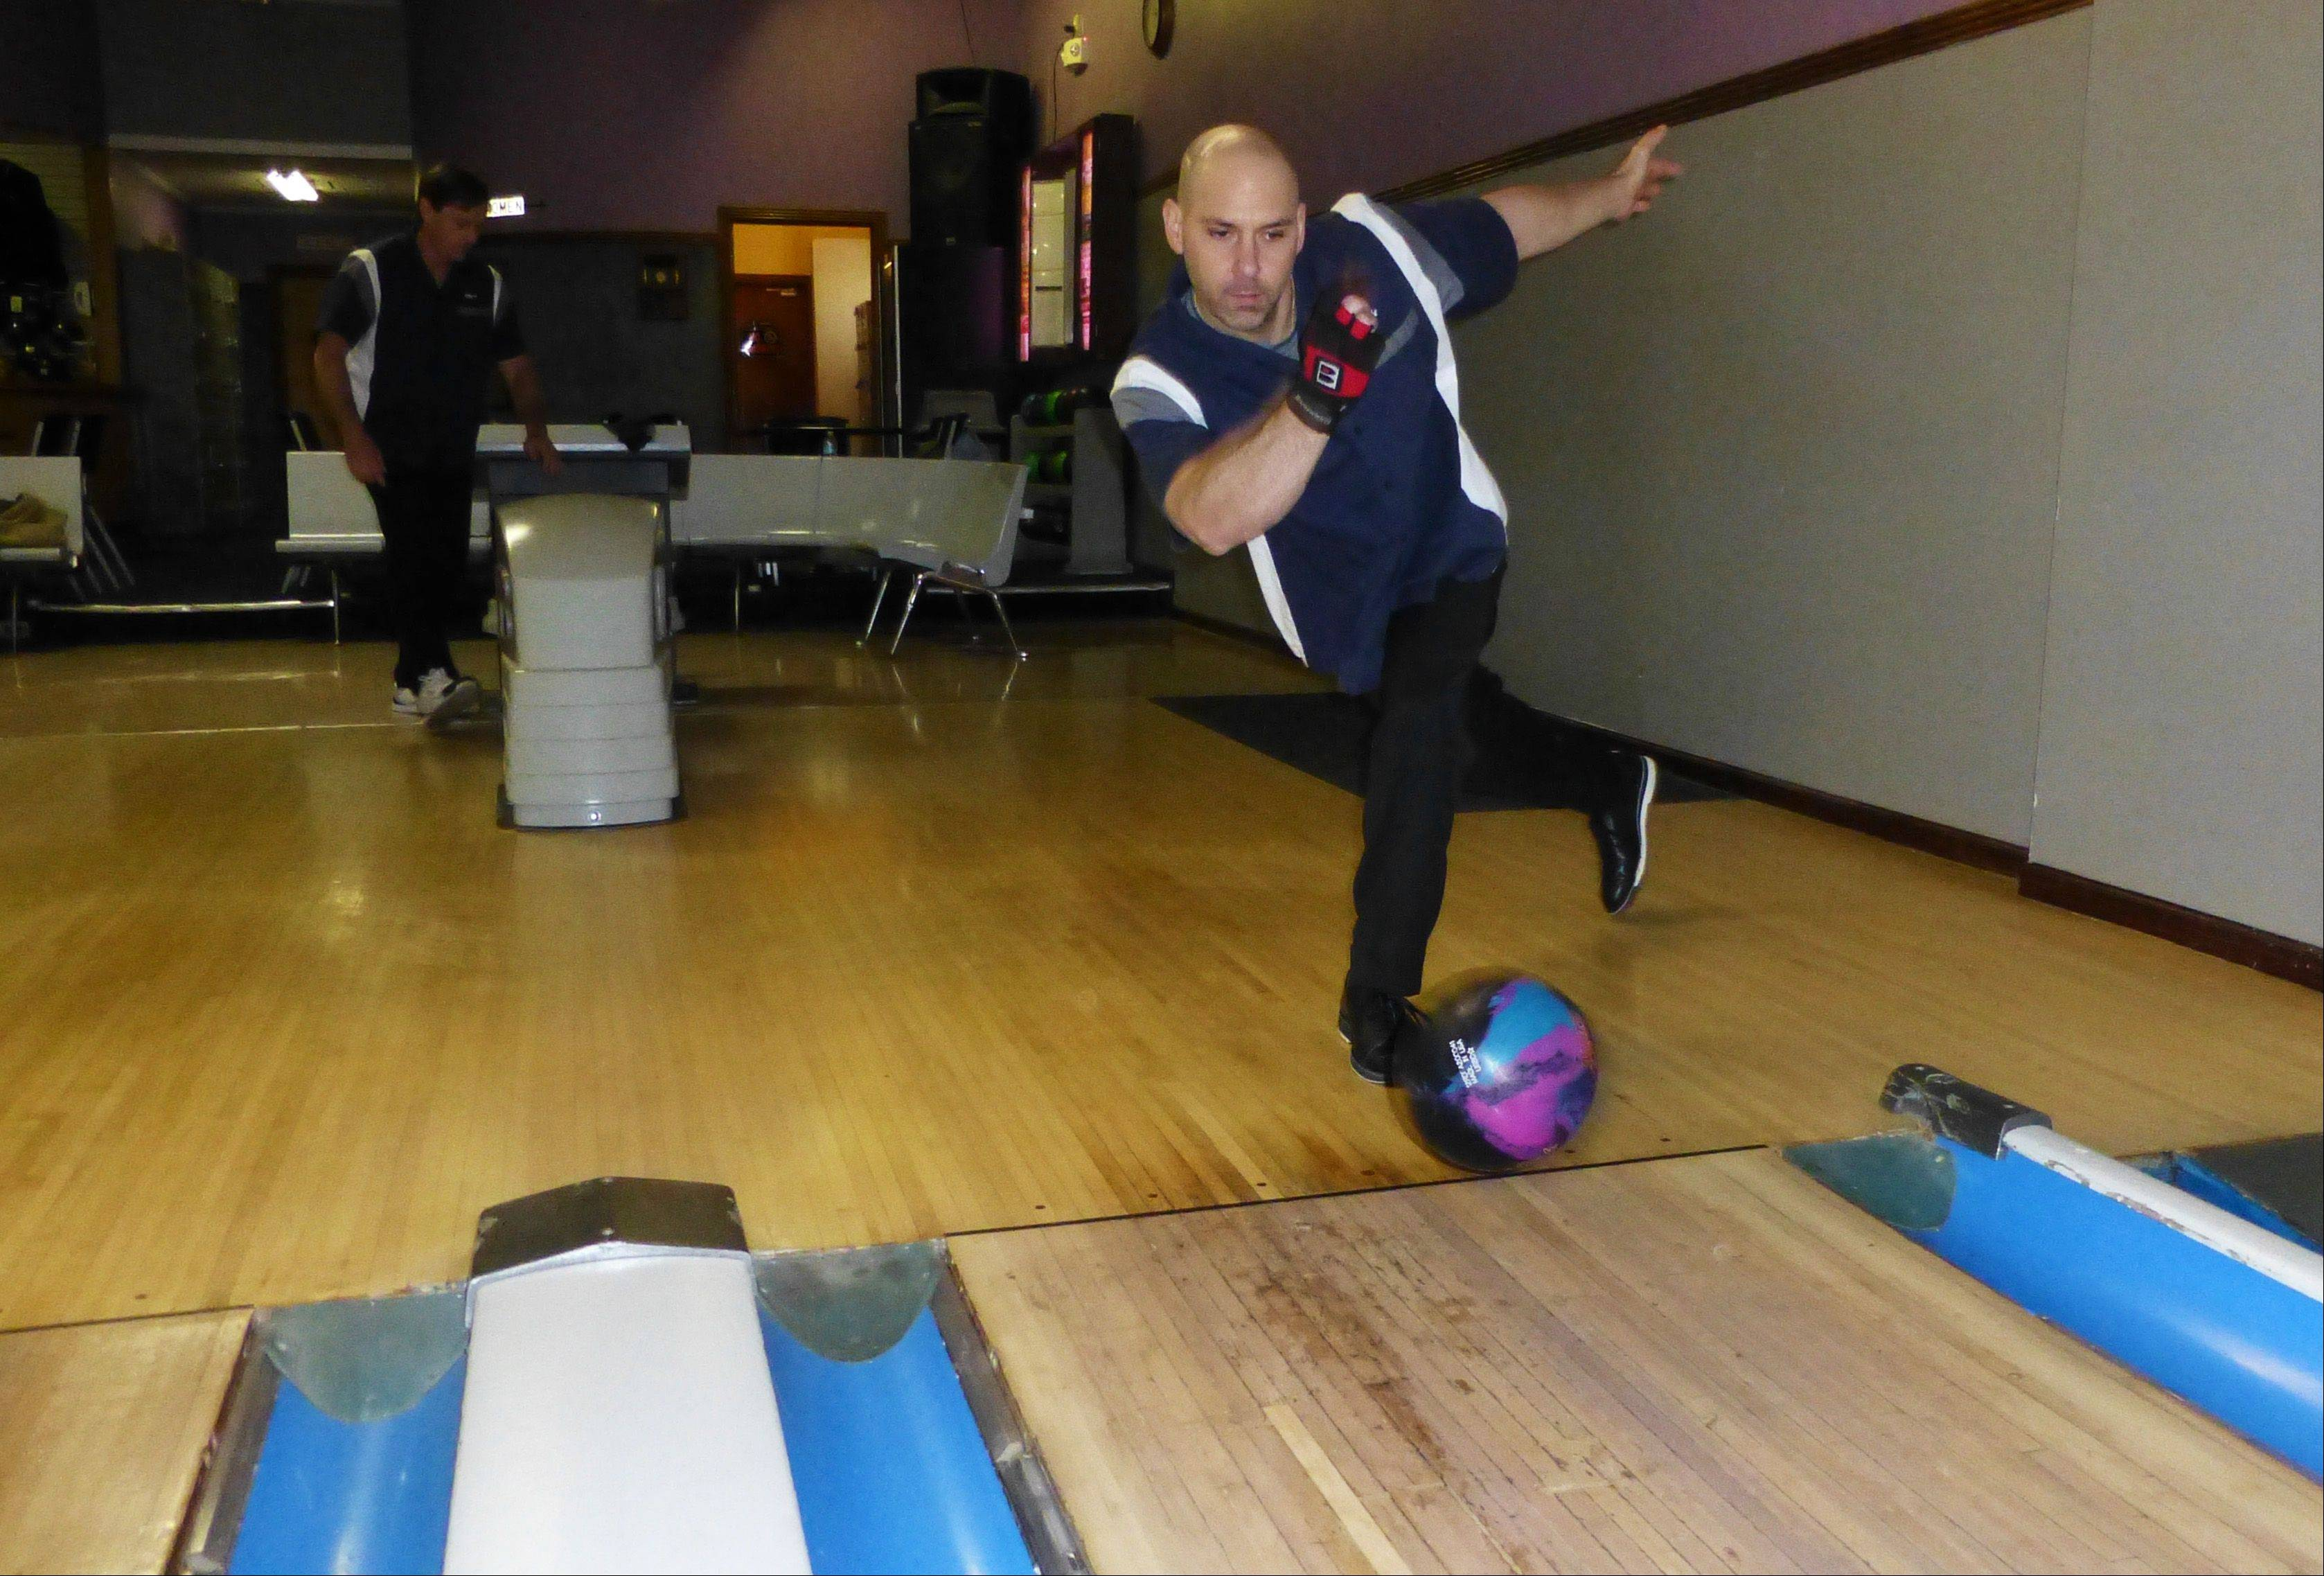 Mike Grocke of Schaumburg will represent the Bowlway Lanes team in the Elgin Cross-Town Classic, a bowling tournament that kicks off at 1 p.m. Saturday, April 13, at Bowlway Lanes.